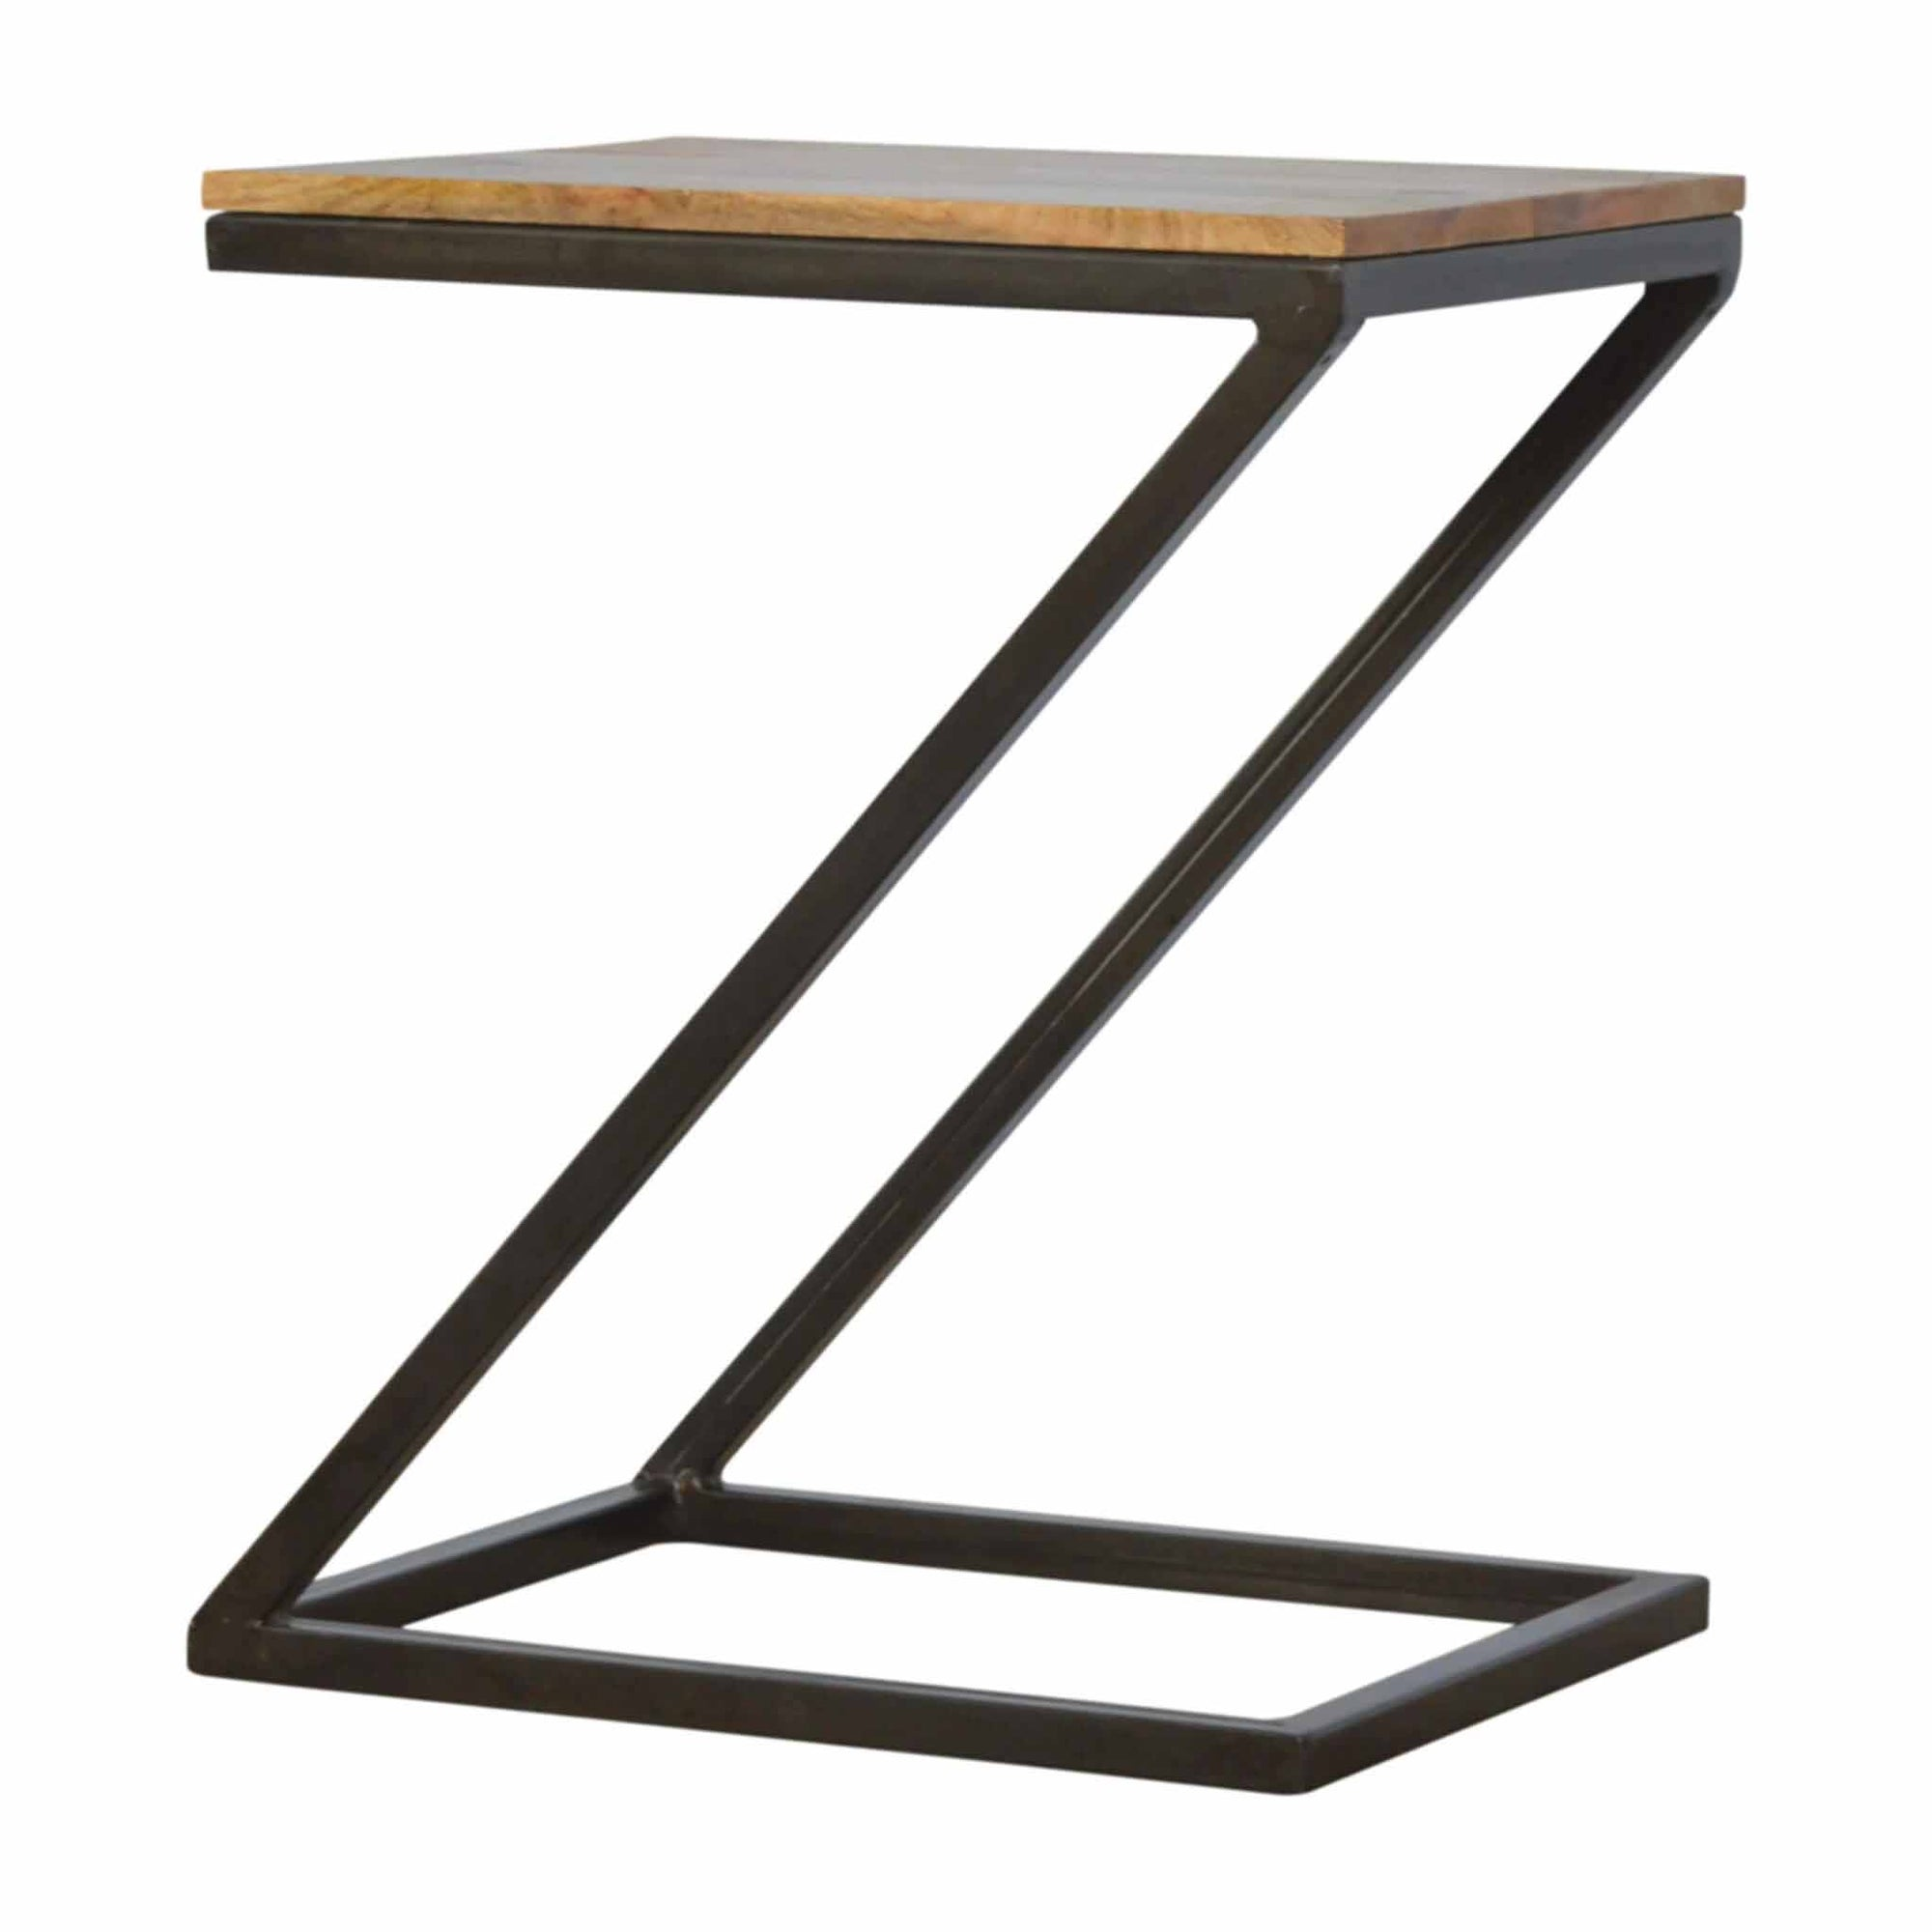 The Artisan Industrial Z shaped Side Table with Iron Frame from Roseland Furniture